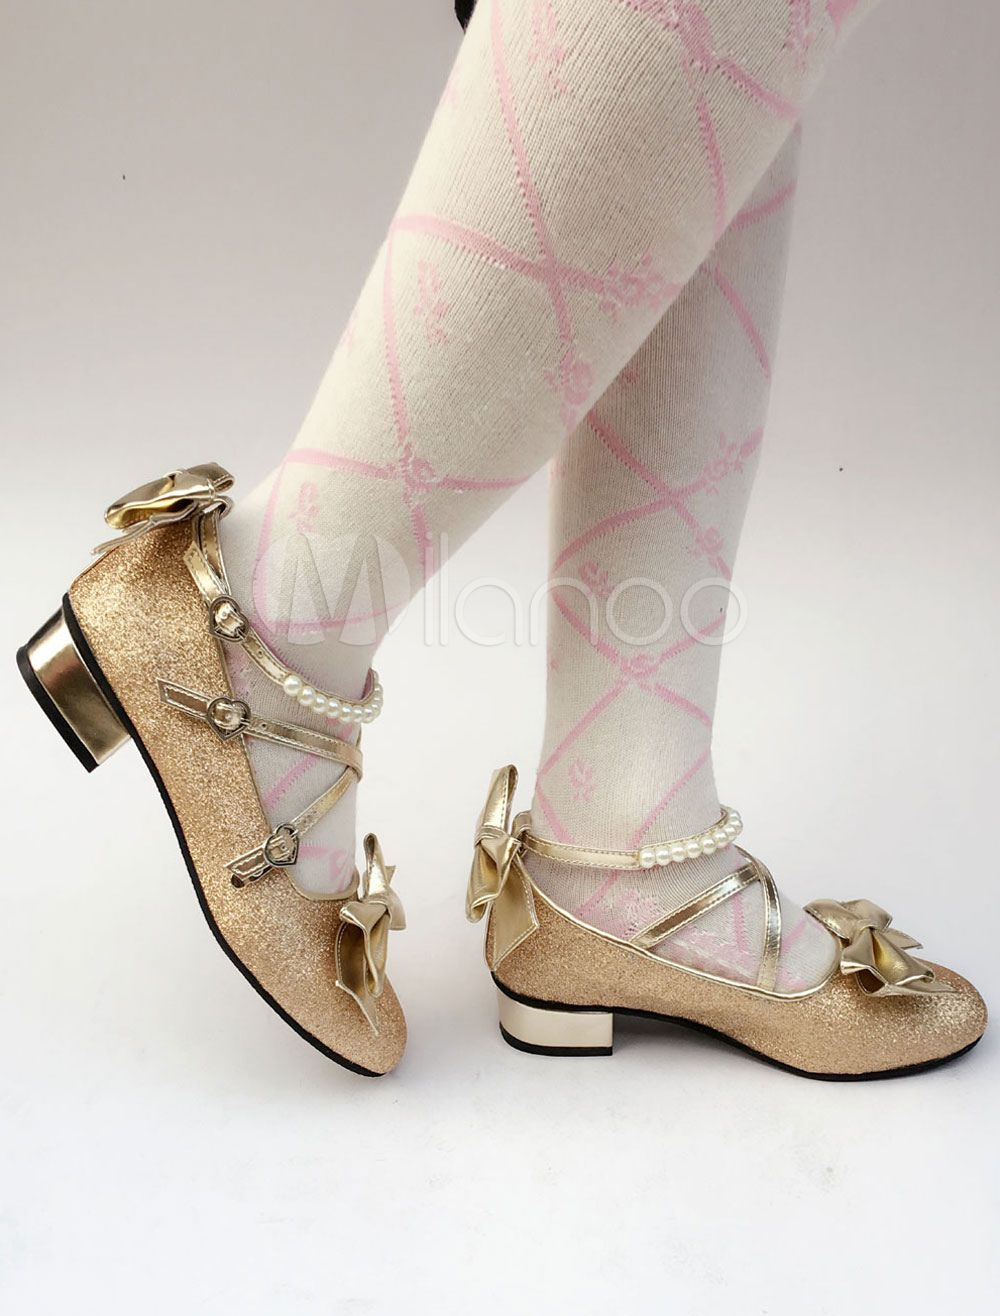 4ee91b9dcad Sweet Lolita Shoes Gold Glitter Pearl Bow Cross Front Heeled Lolita ...